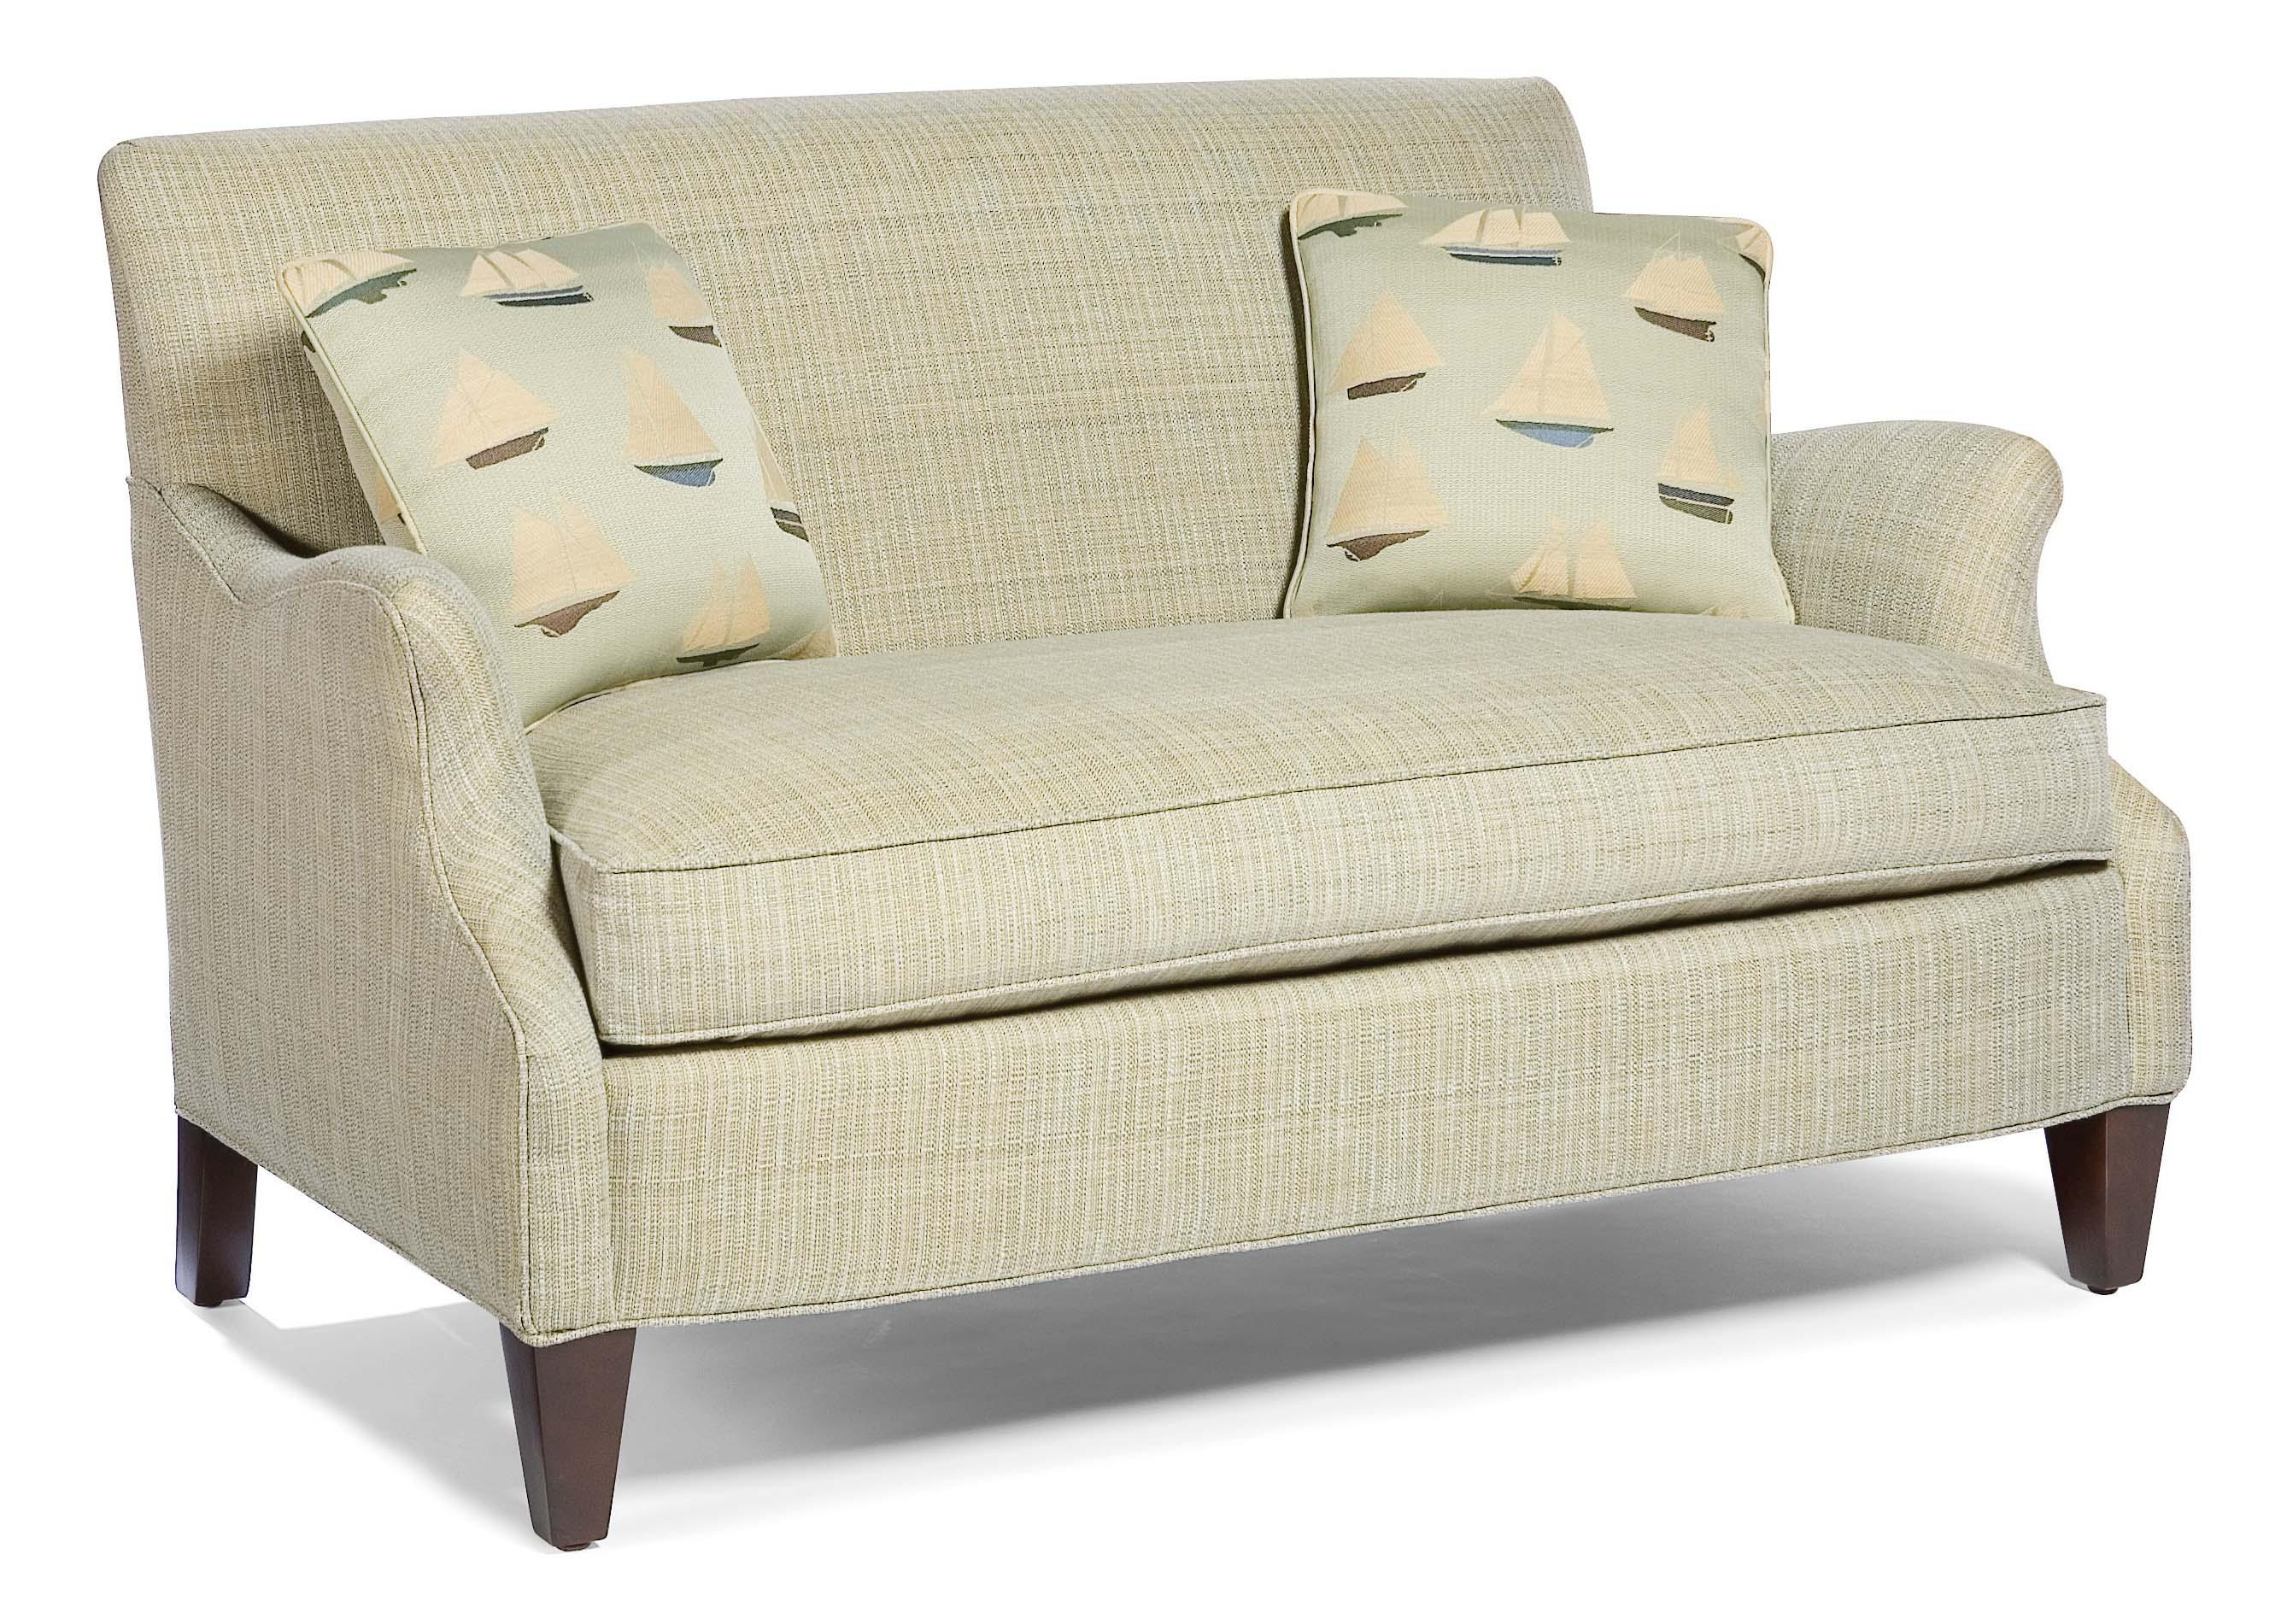 Fairfield 5706 Stationary Loveseat - Item Number: 5706-40